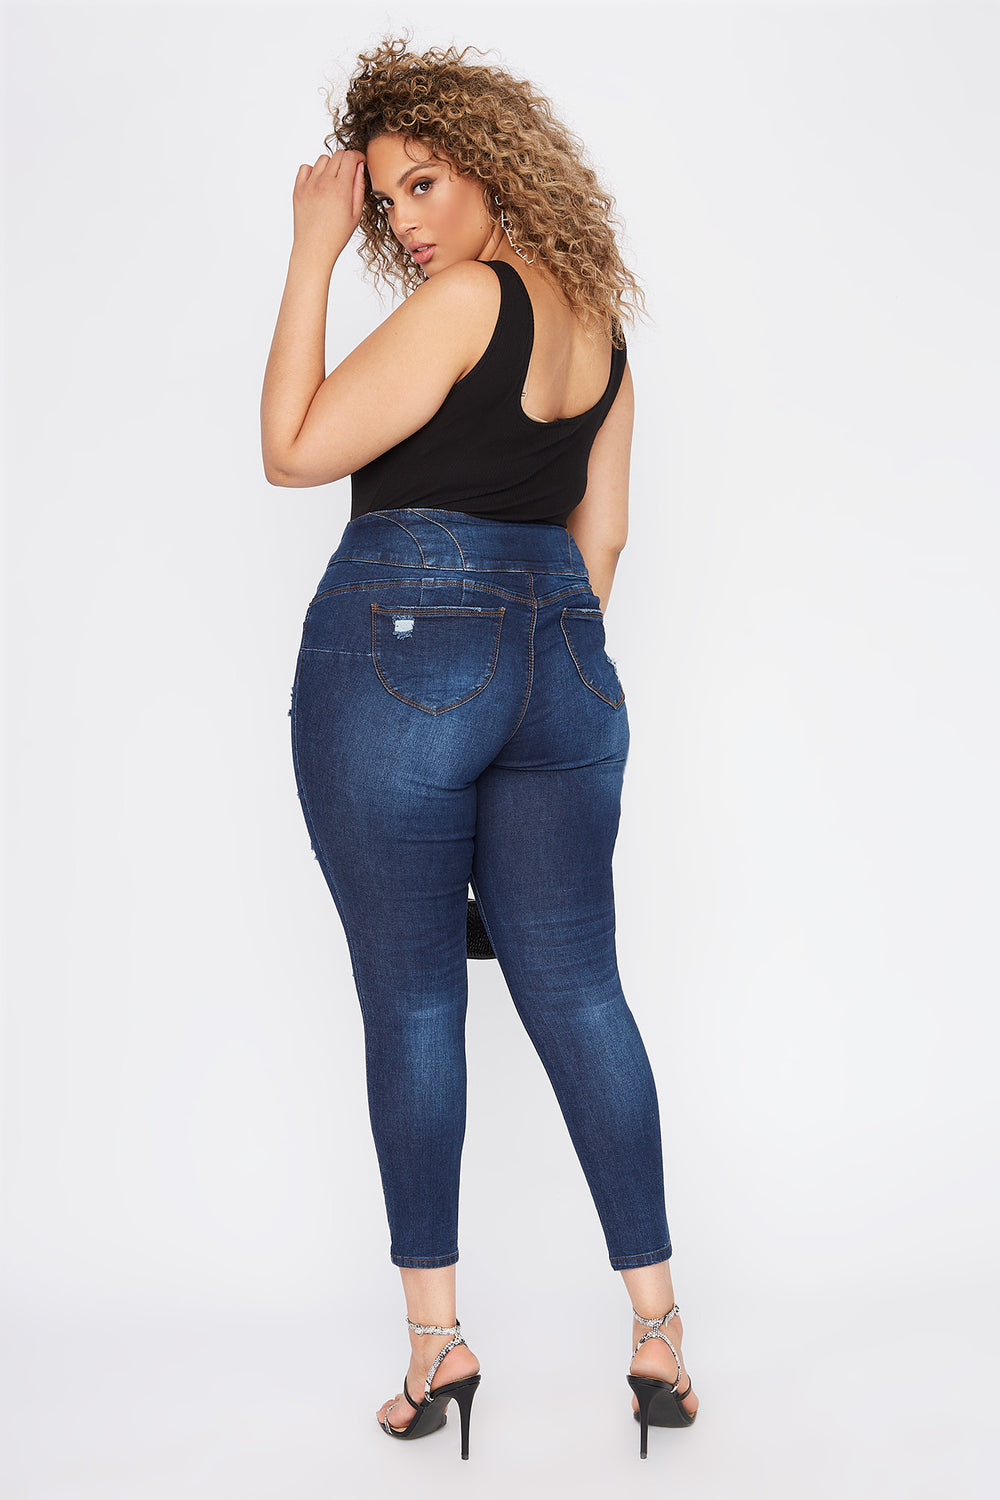 Plus Size Butt, I Love You 4-Tier High-Rise Distressed Push-Up Skinny Jean Medium Blue